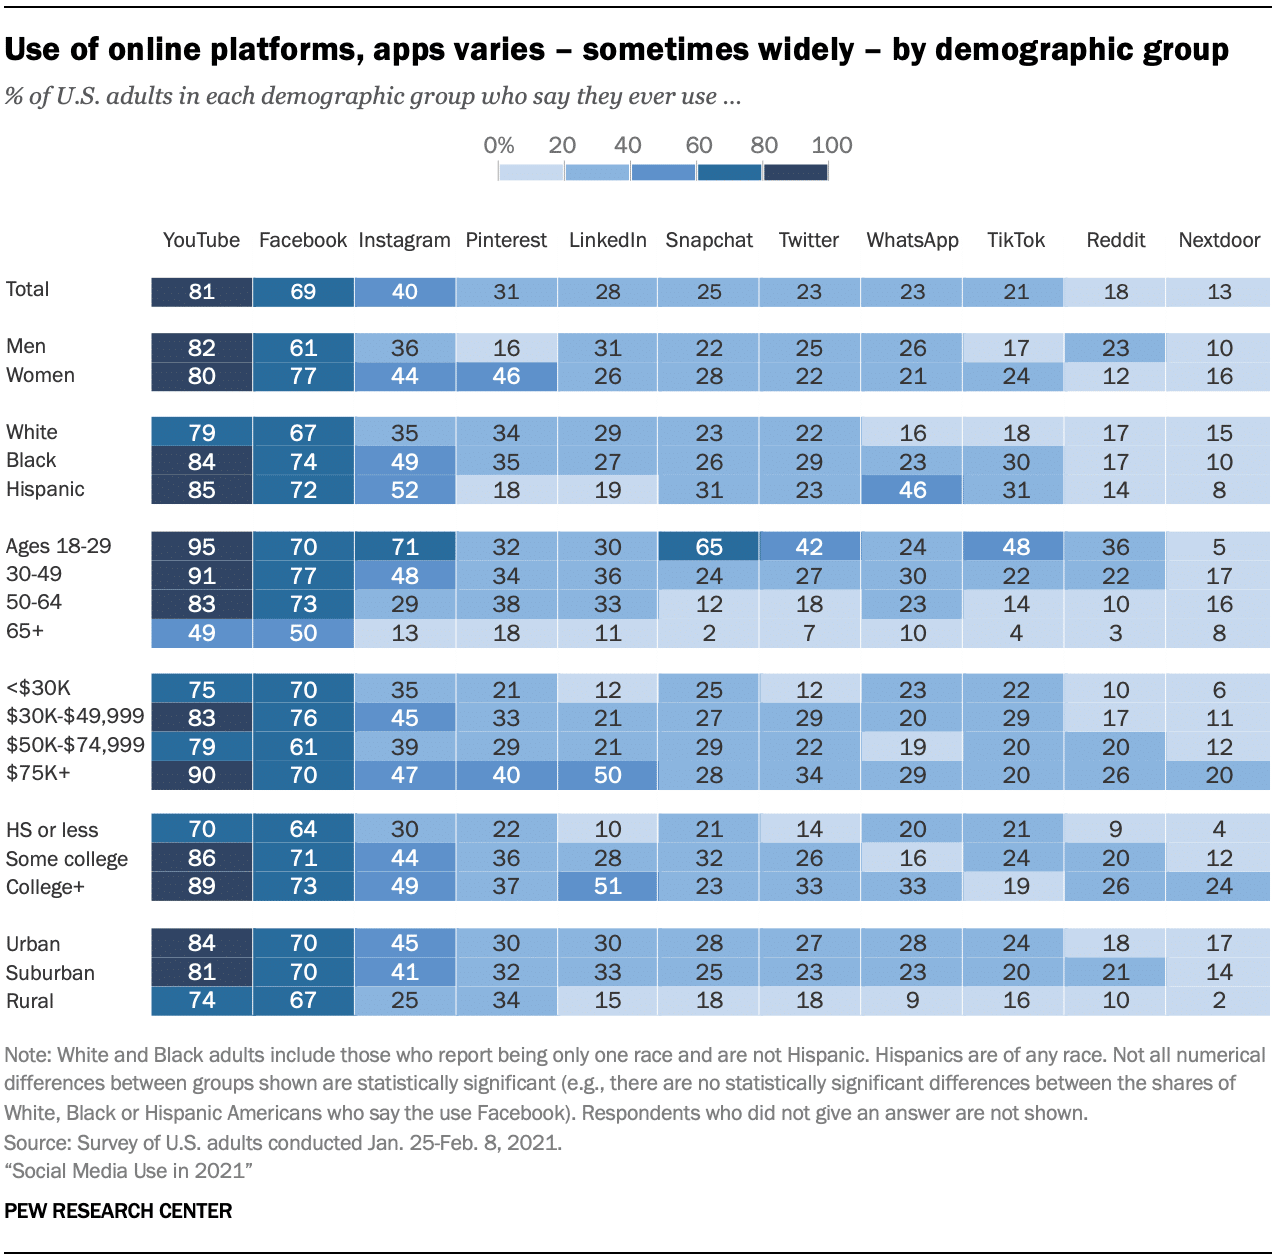 use of online platforms, apps varies by demographic group